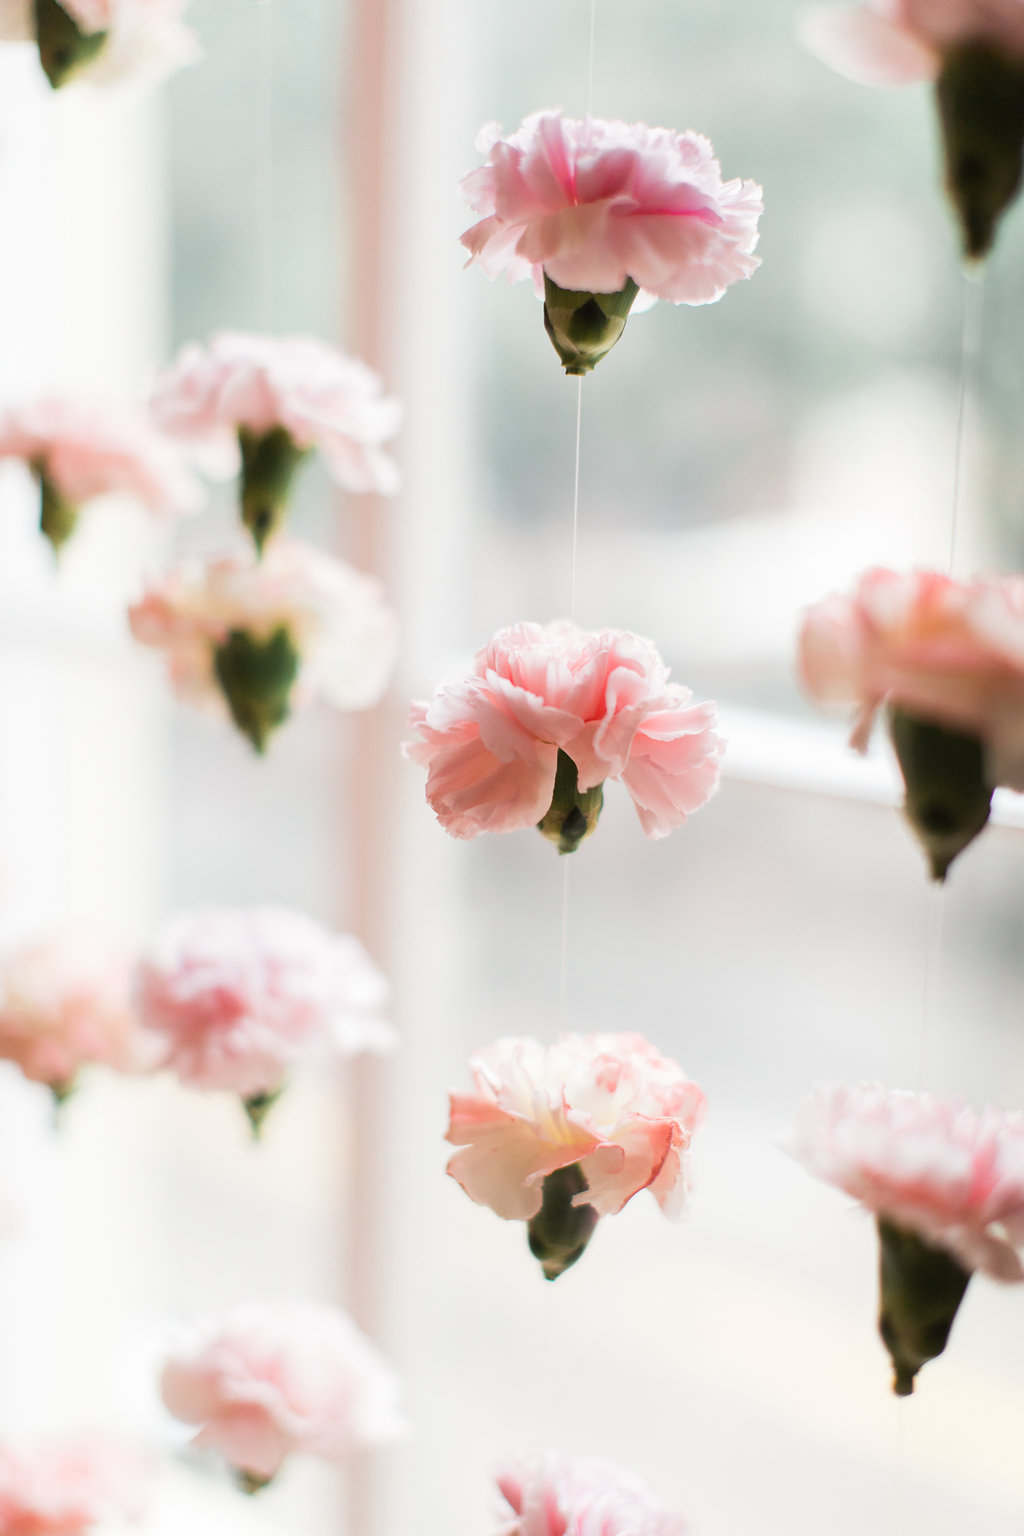 the-happy-bloom-photography-ivory-and-beau-wedding-planning-ivory-and-beau-bridal-boutique-whitfield-chapel-wedding-10-downing-wedding-savannah-wedding-historic-savannah-wedding-savannah-wedding-planner-savannah-weddings-a-to-zinnias-48.jpg